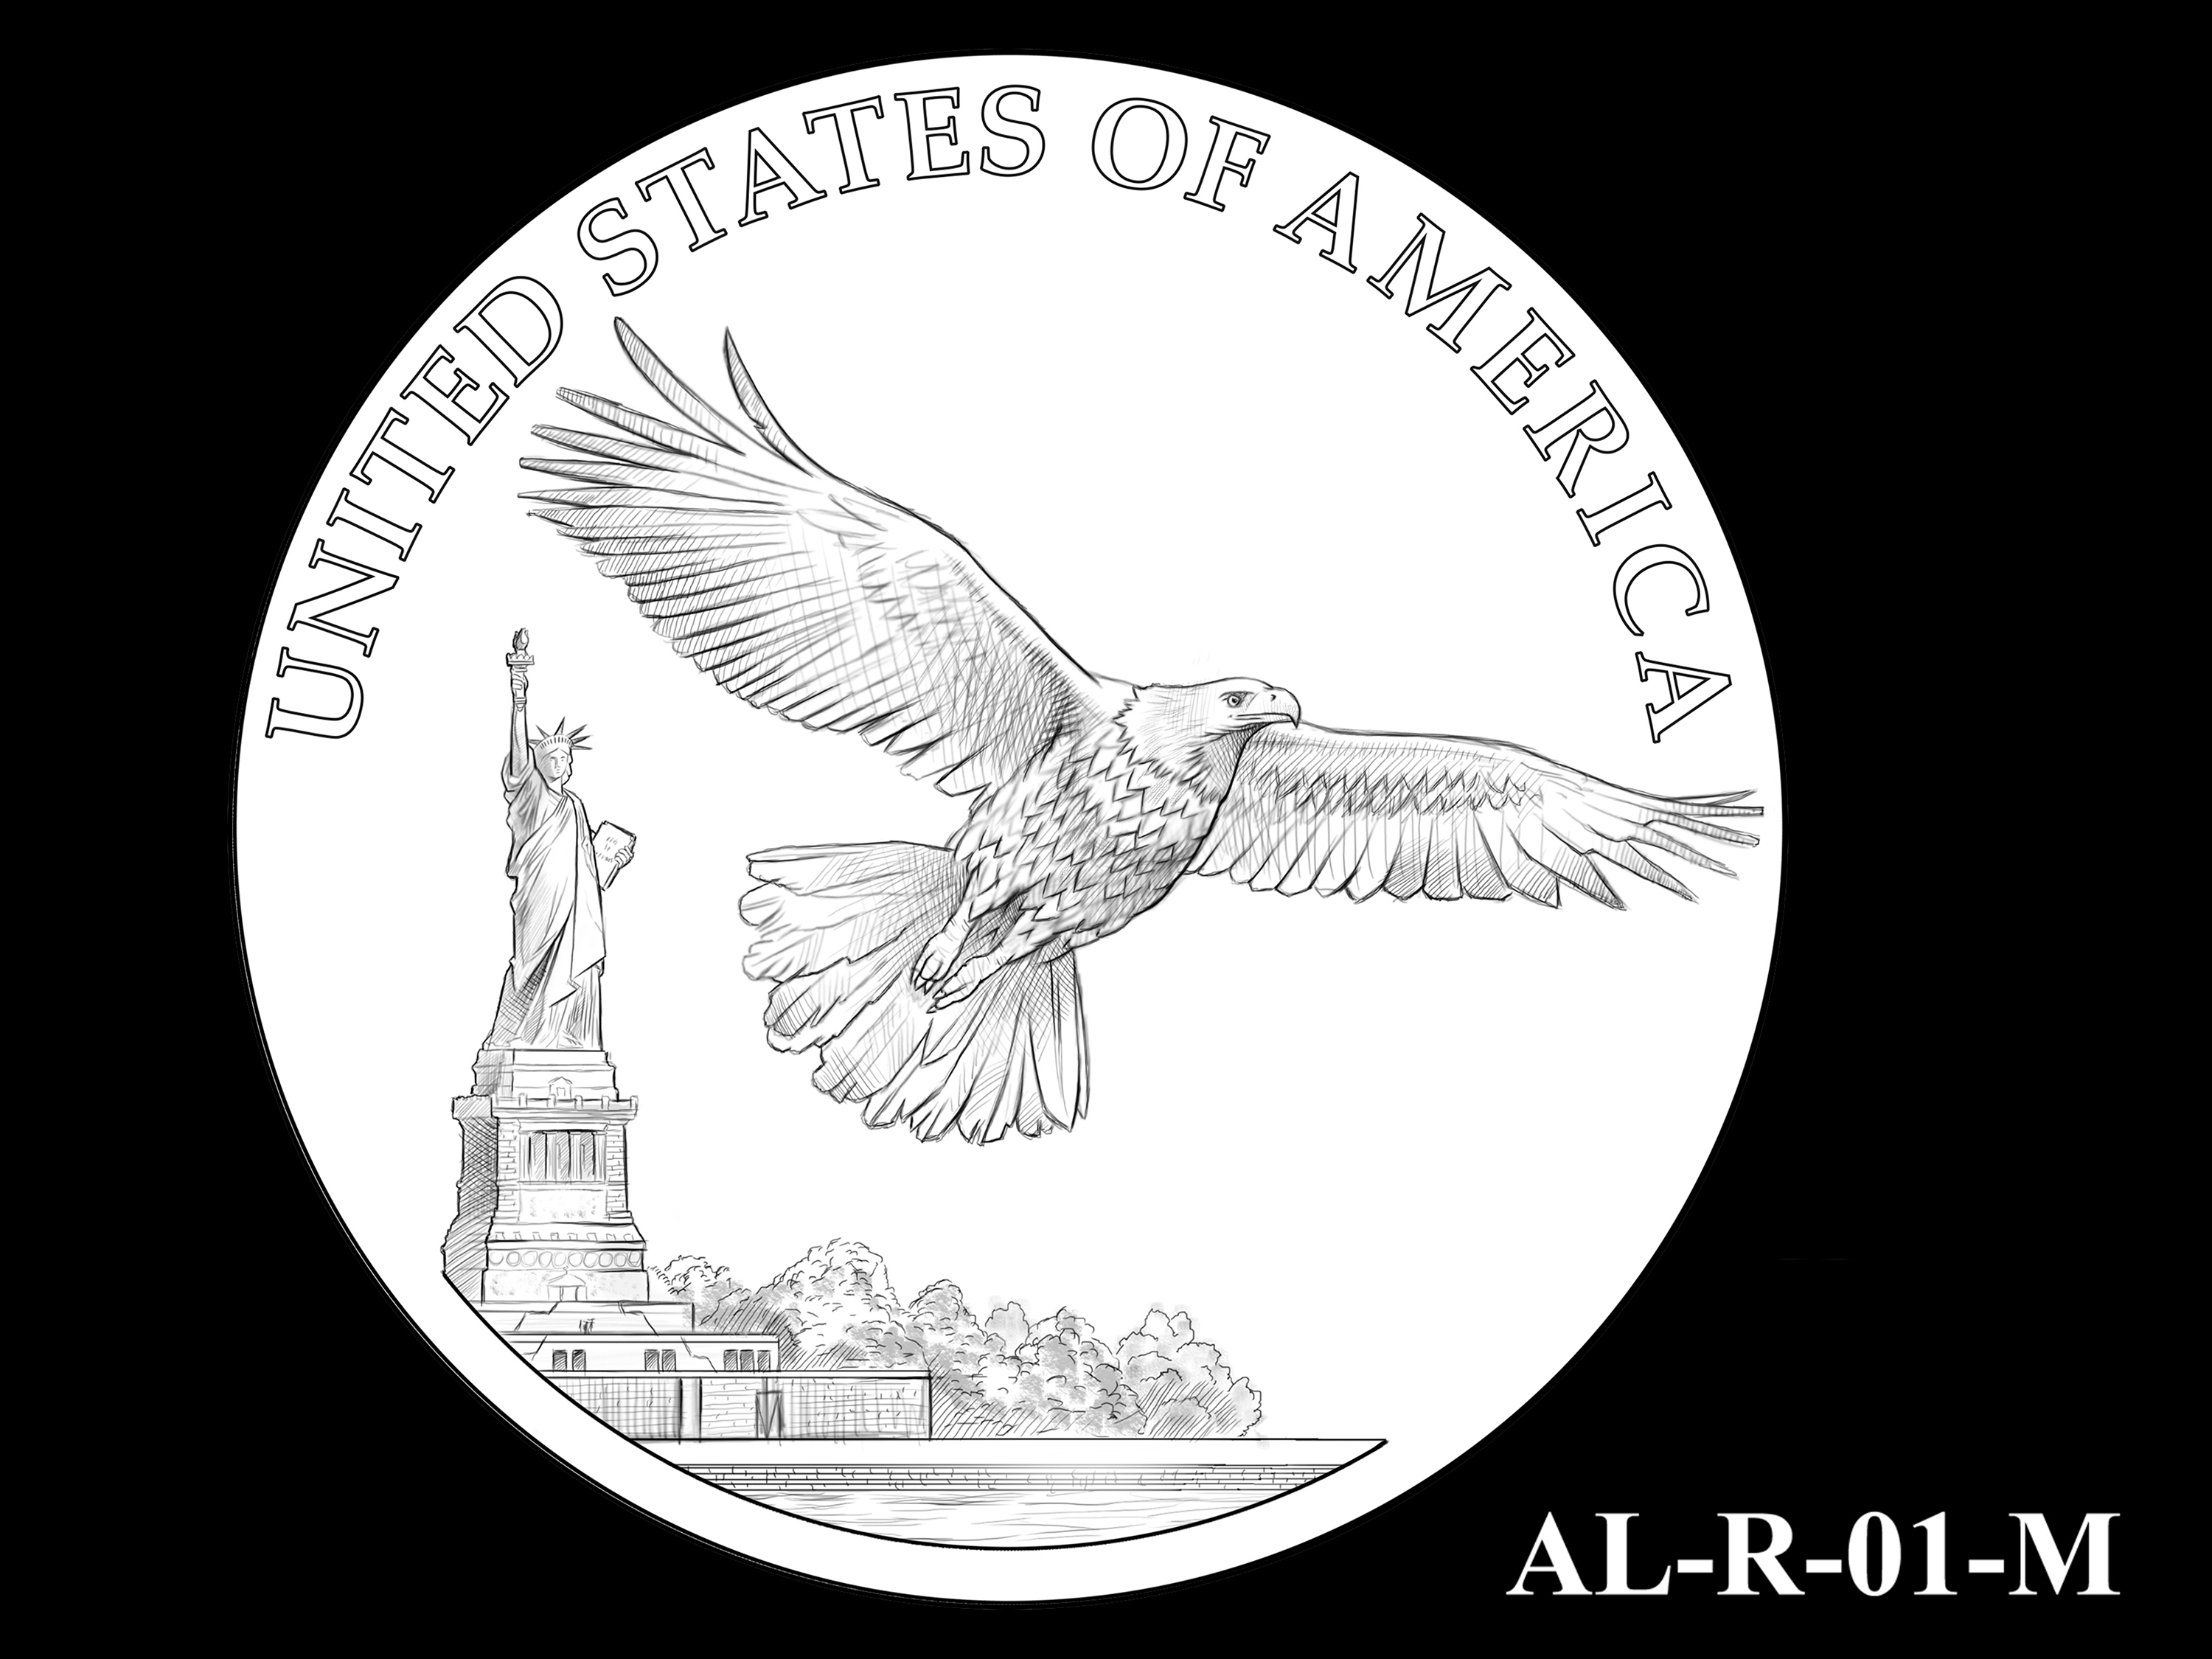 AL-R-01-M -- 2021 American Liberty Gold Coin and Silver Medal Program - Reverse